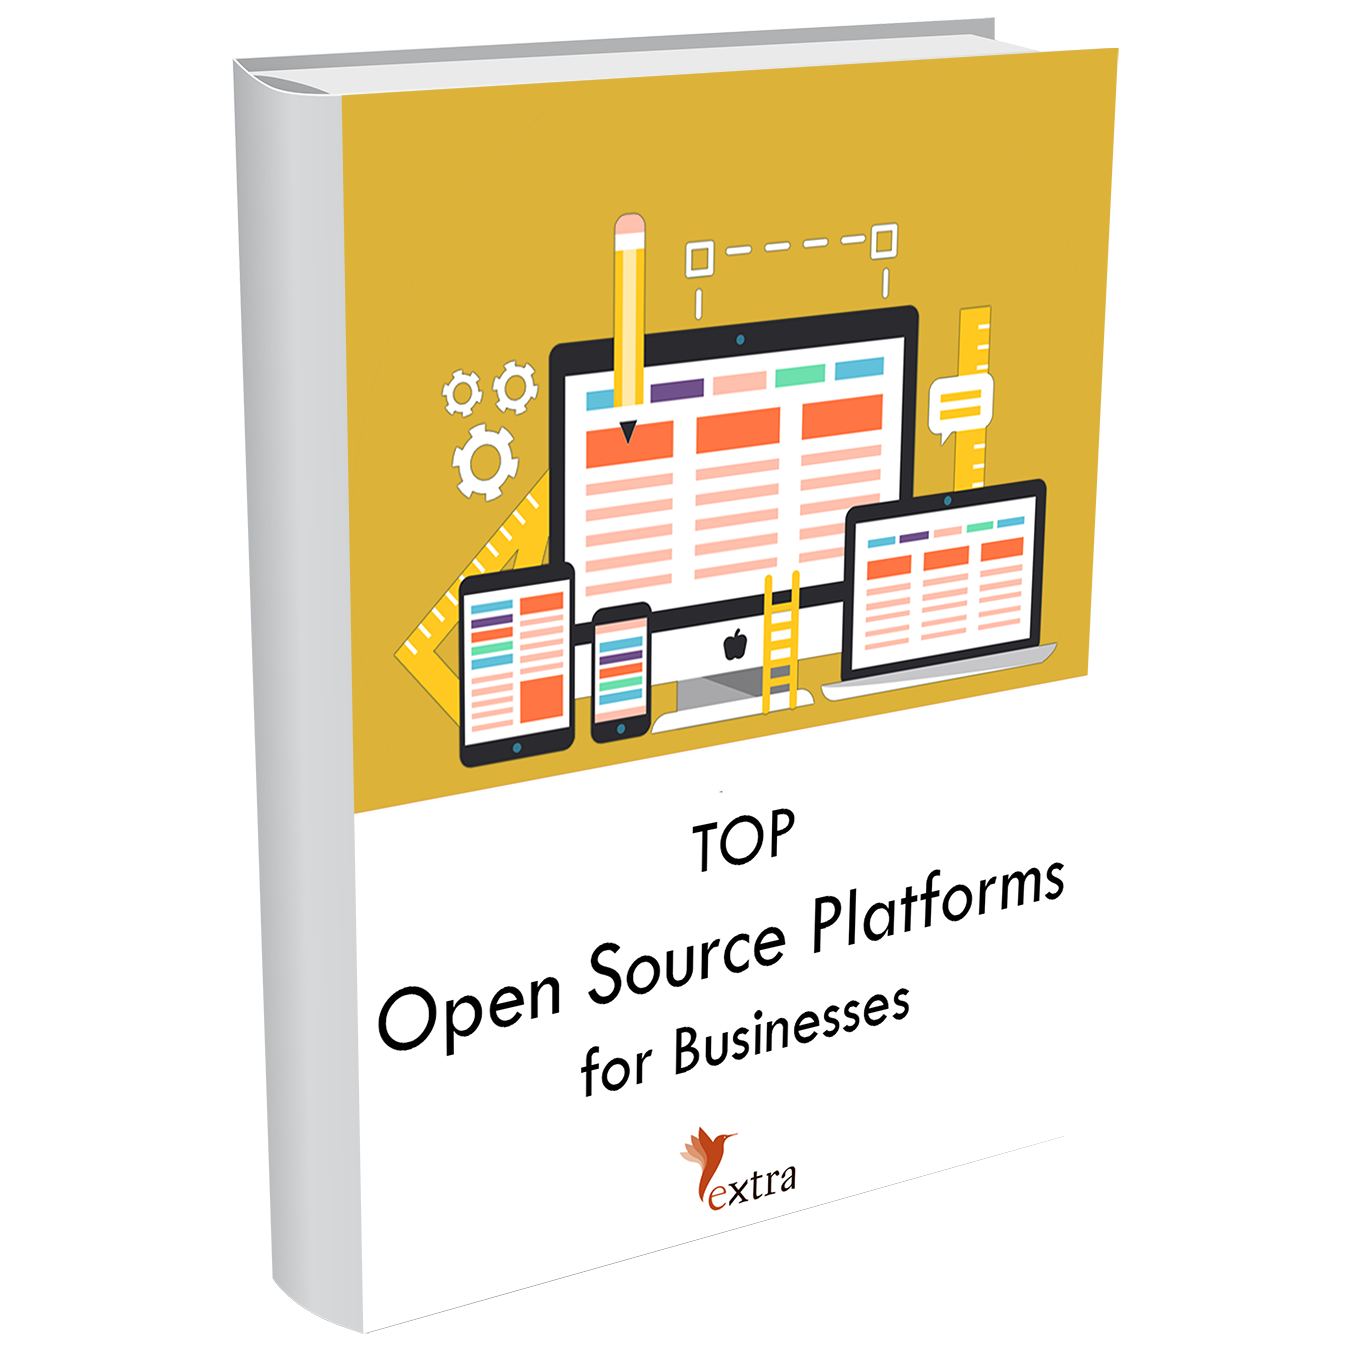 Top Open Source Platforms for Business